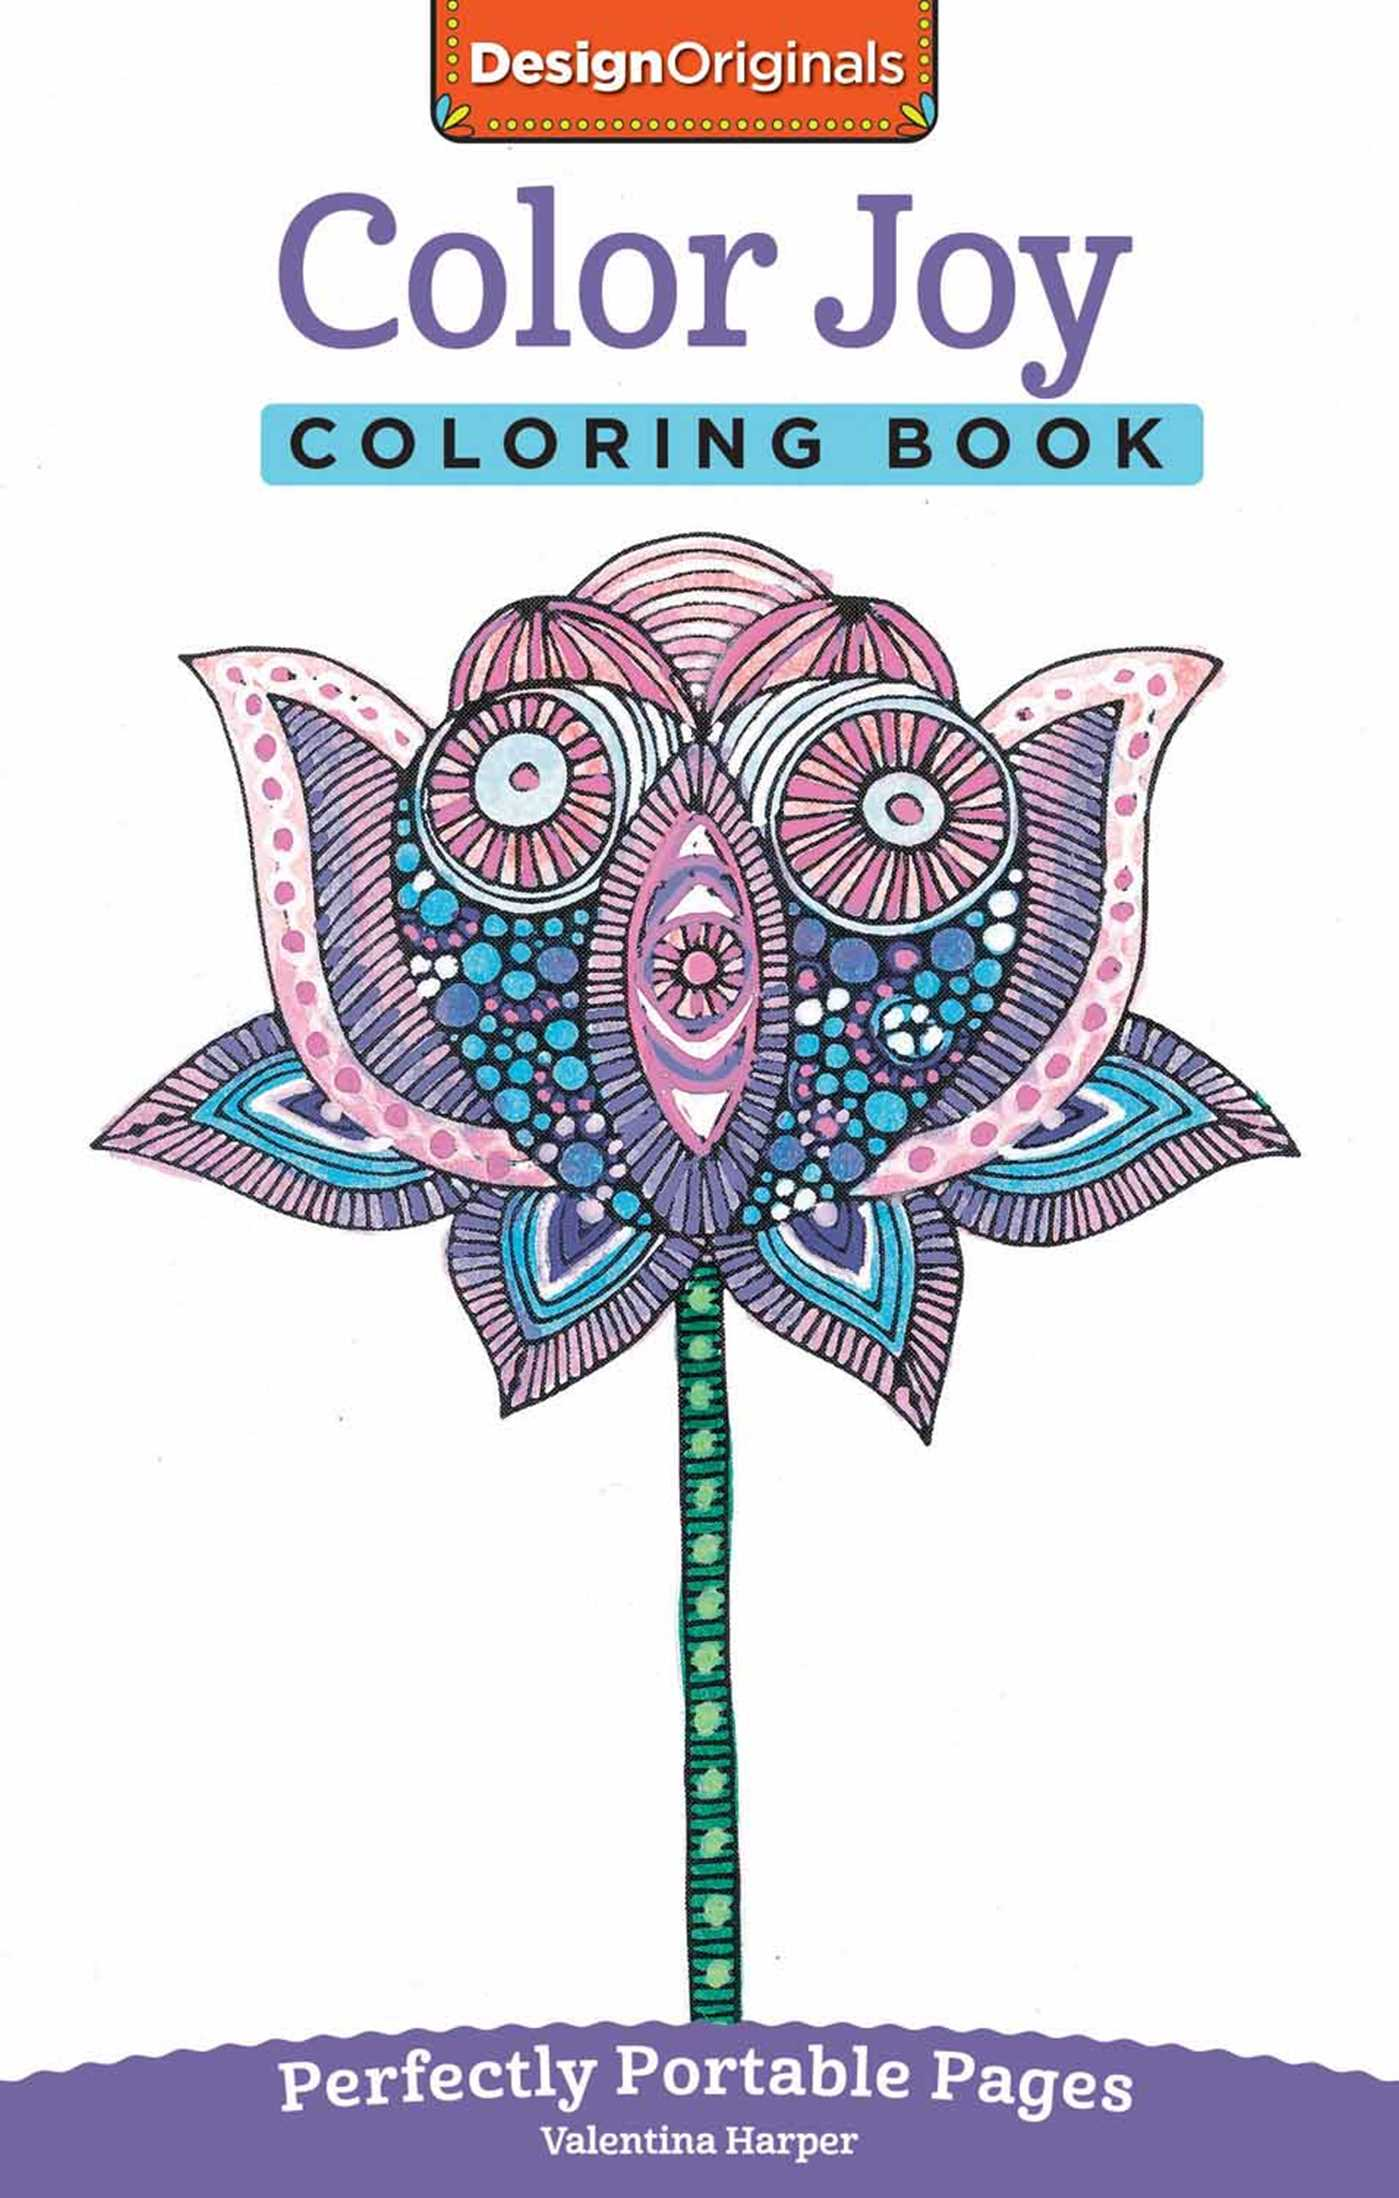 Image Result For Downtime Coloring Book